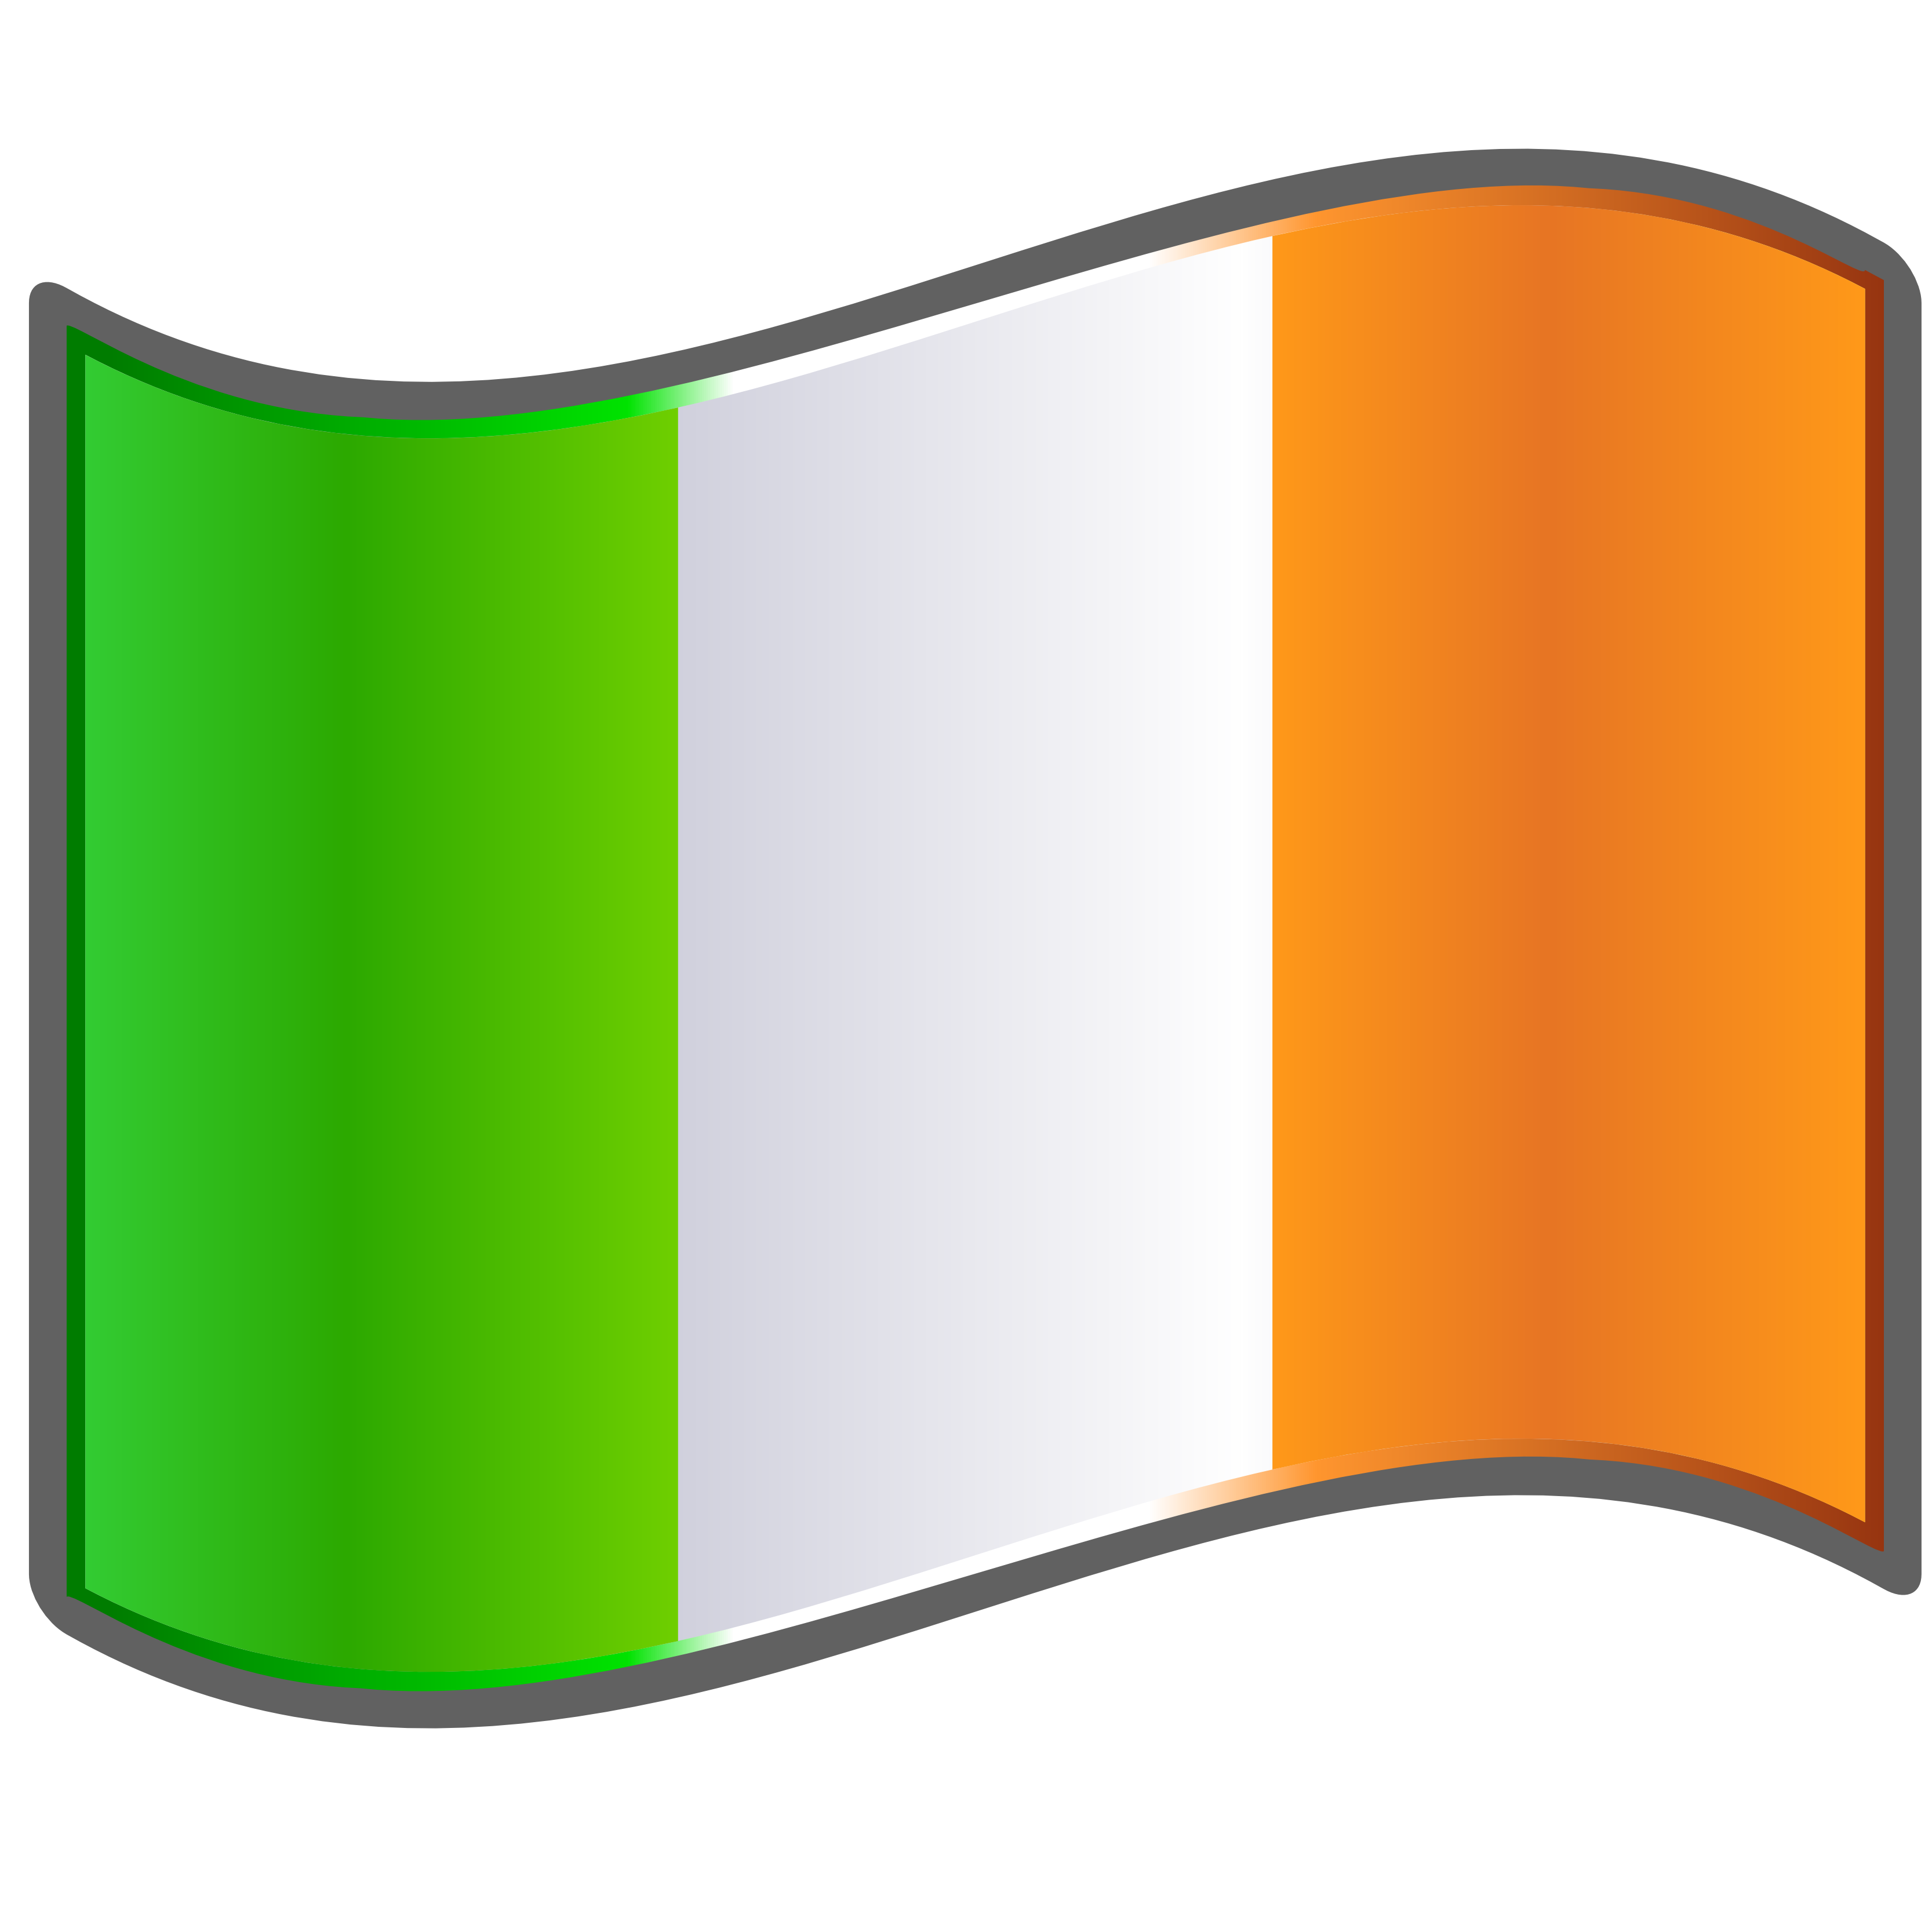 Ireland clipart free jpg library library Free Irish Cliparts, Download Free Clip Art, Free Clip Art on ... jpg library library